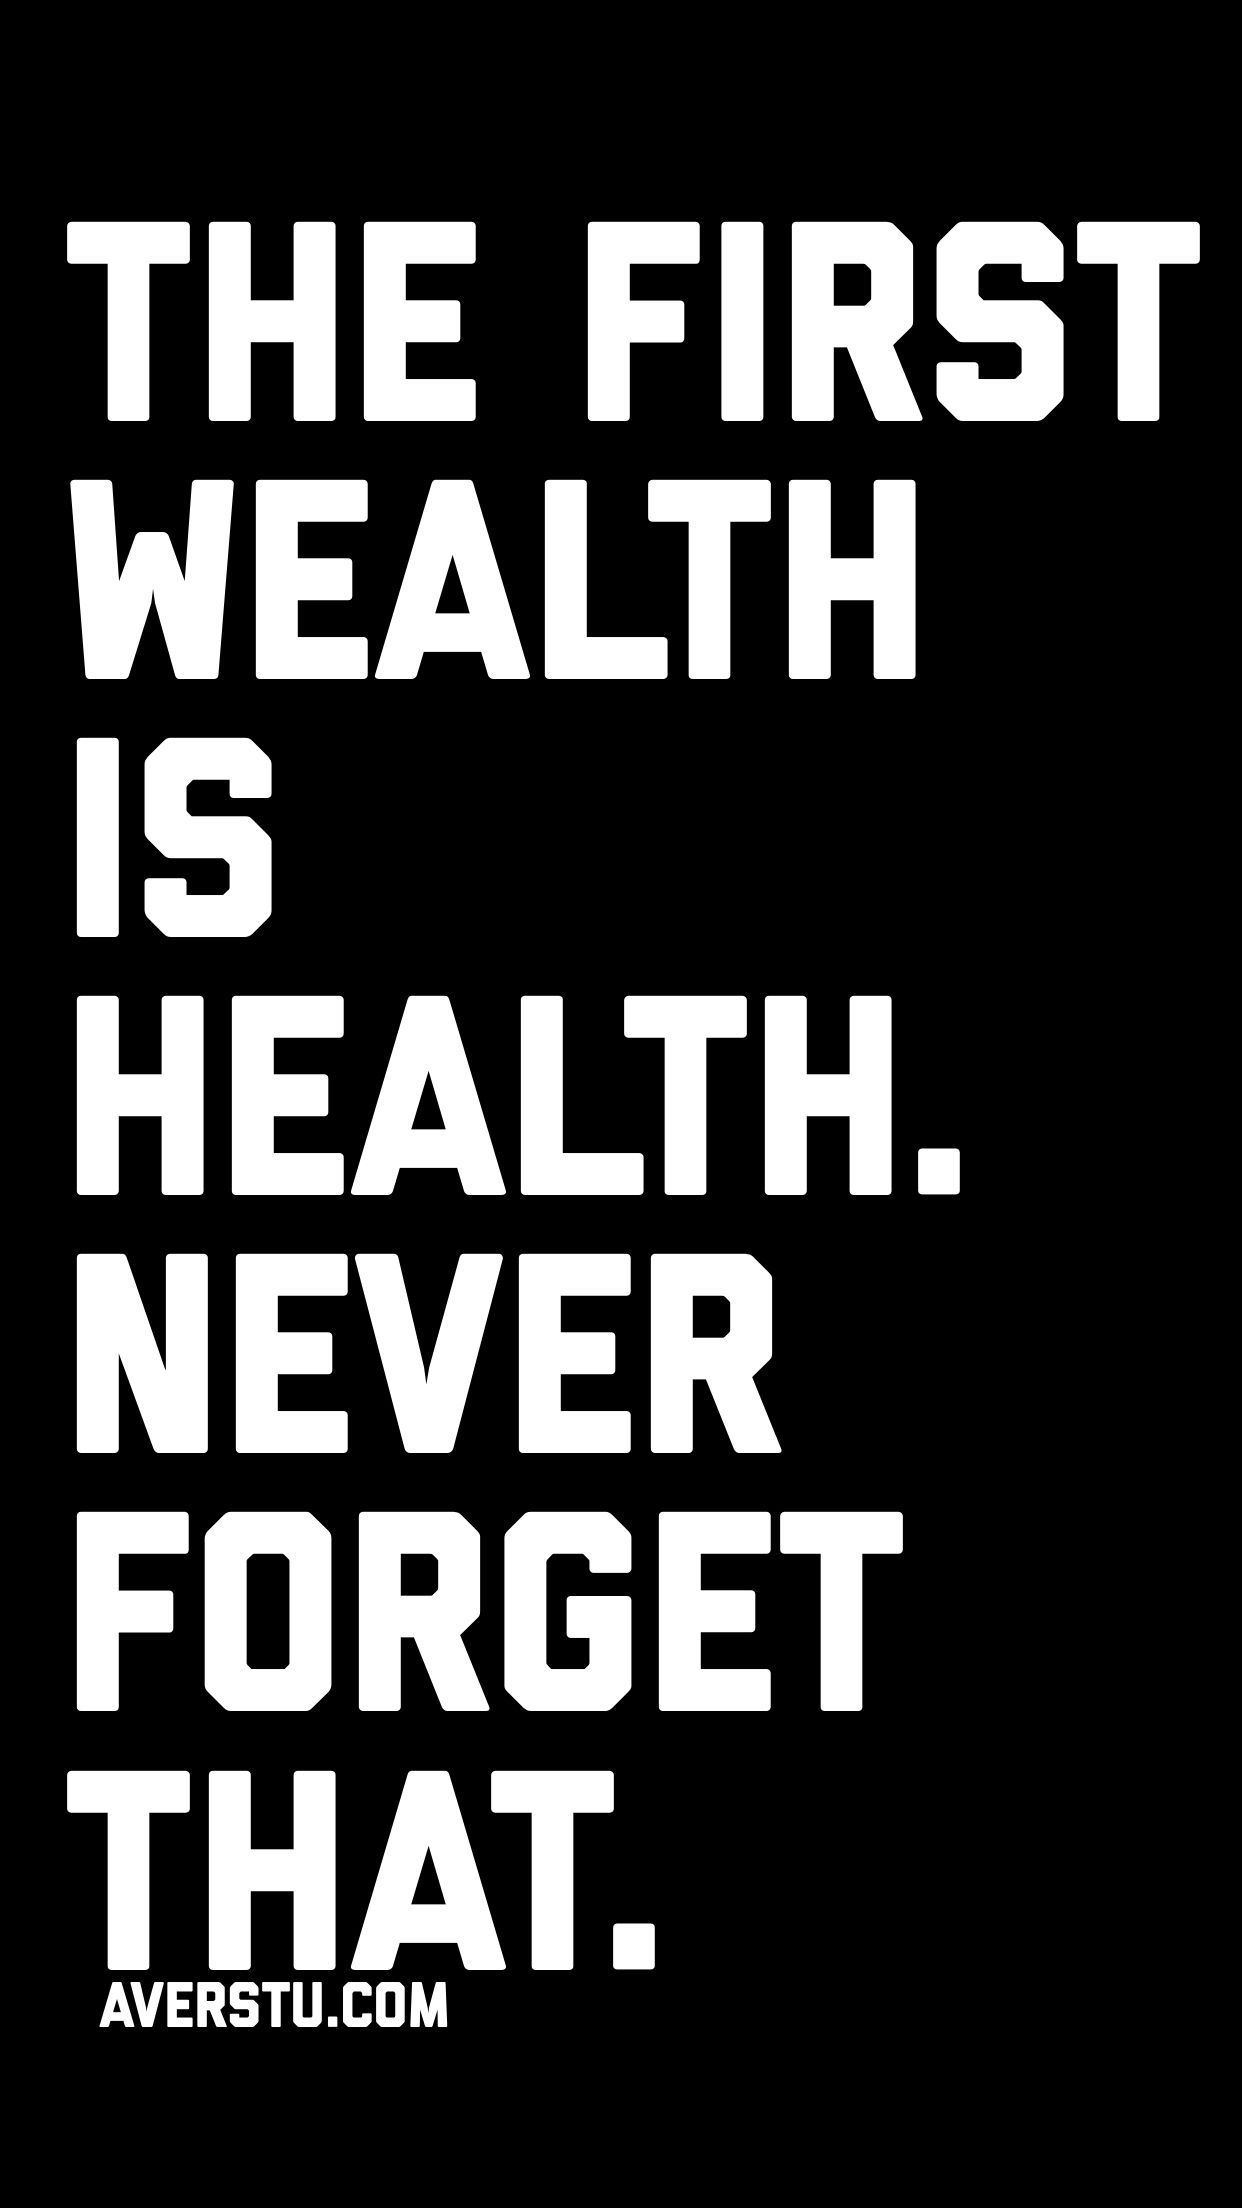 The First Wealth Is Health Never Forget That Healthiswealthquotes The First Wealth Is Health Neve In 2020 Health Is Wealth Quotes Health Quotes Self Love Quotes